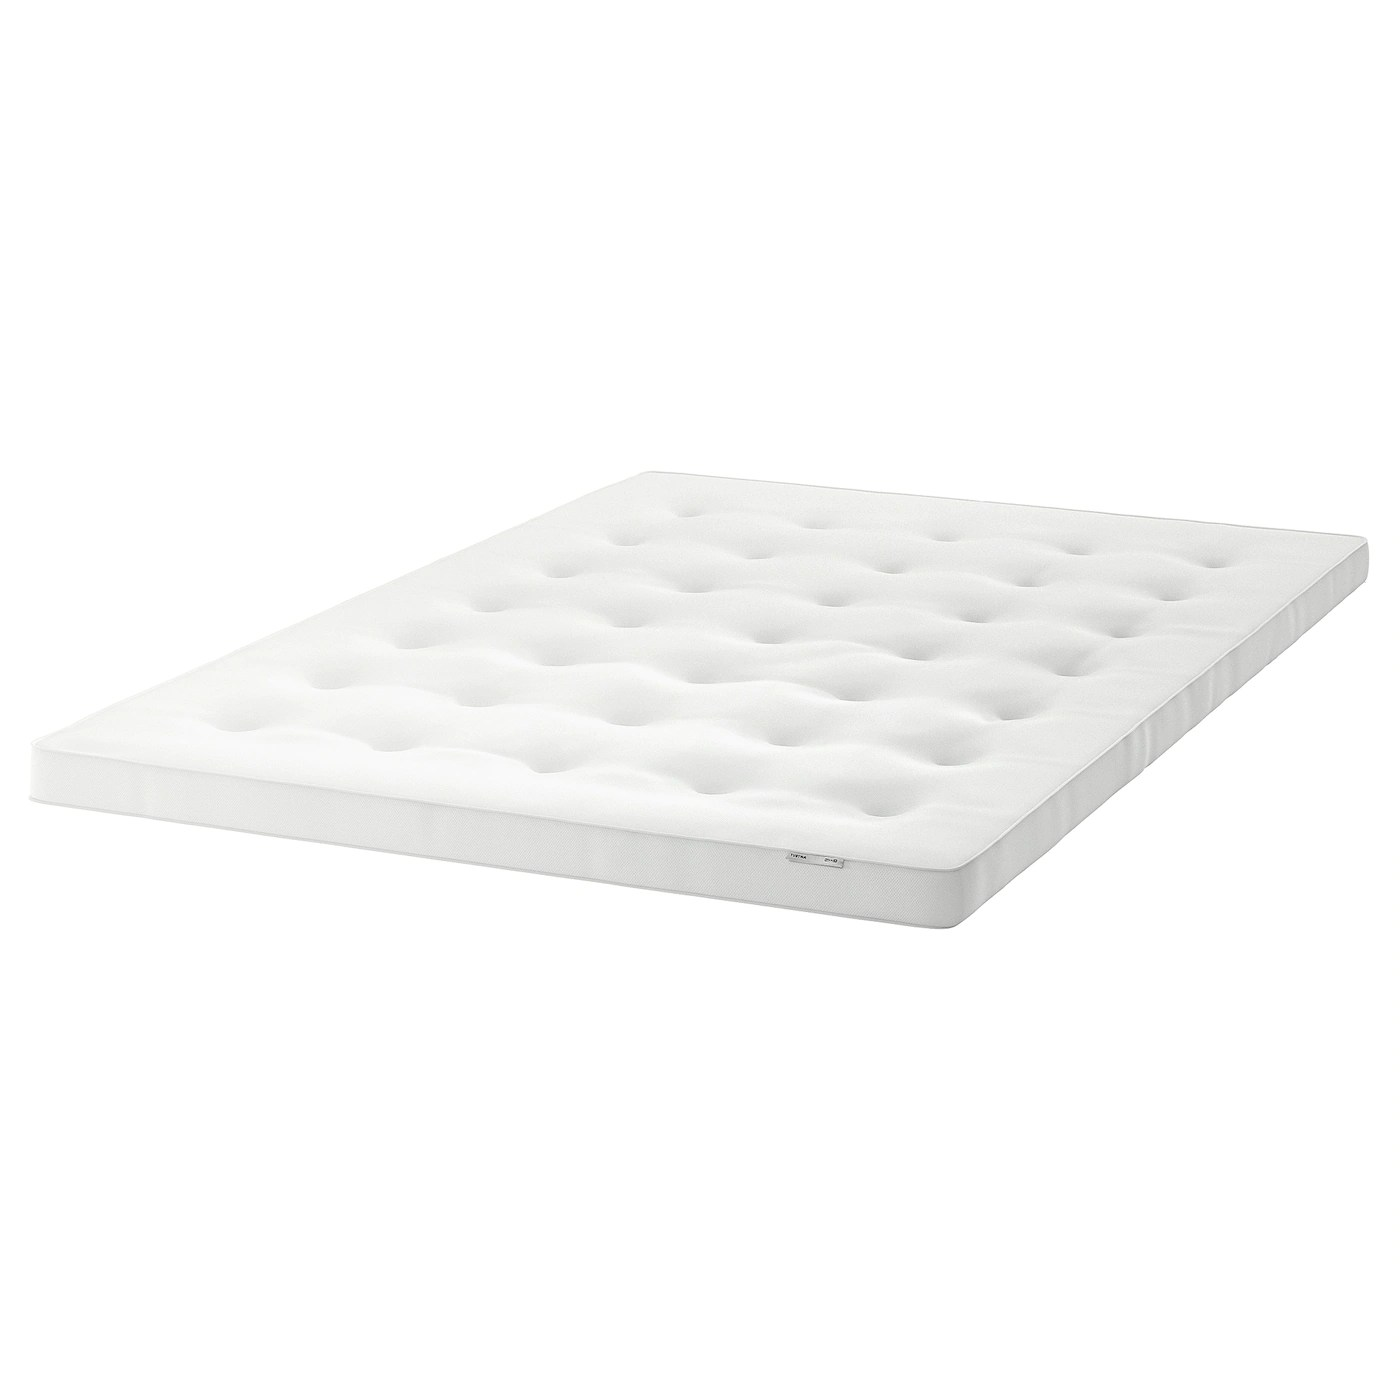 Gel Topper 180x200 Mattress Topper Memory Foam Mattress Topper Ikea